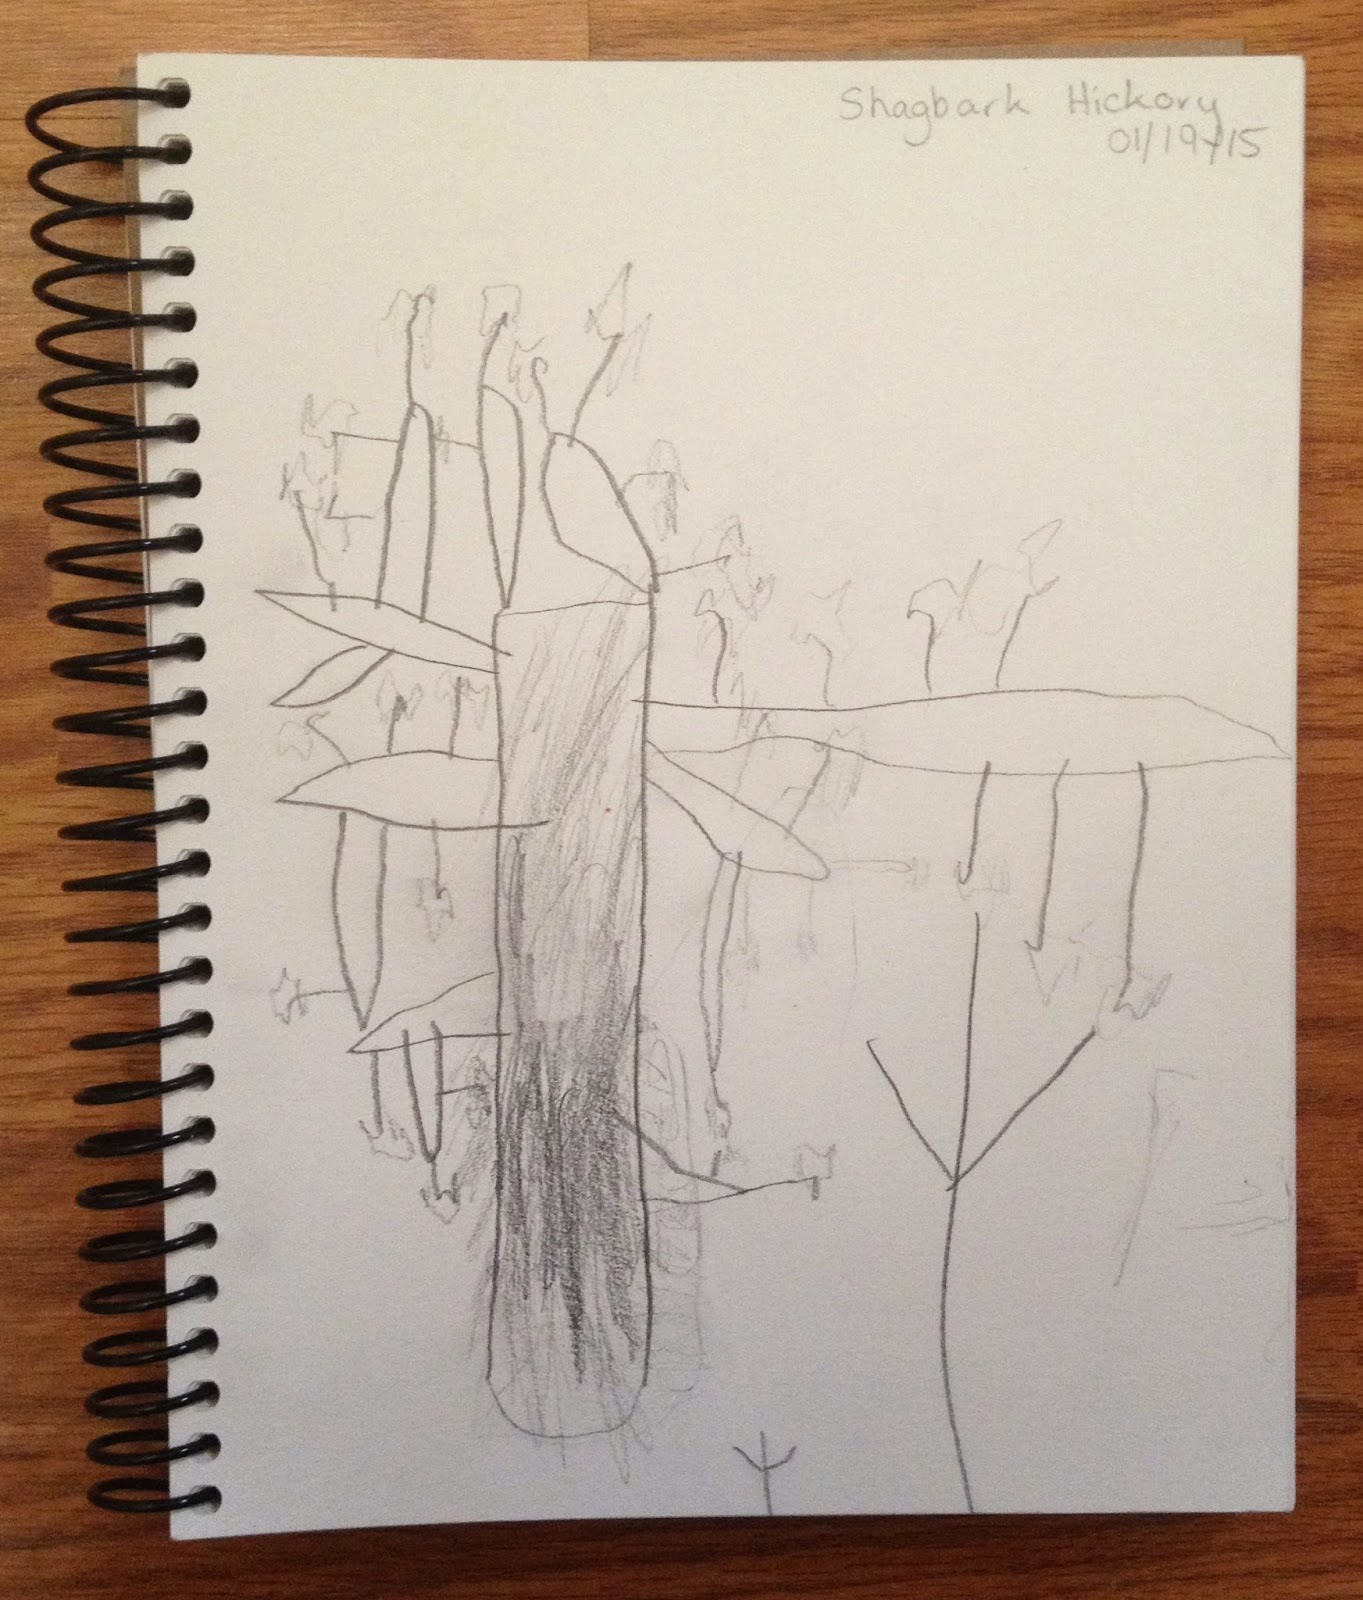 Nature Notebooks: Shagbark Hickory Sketches